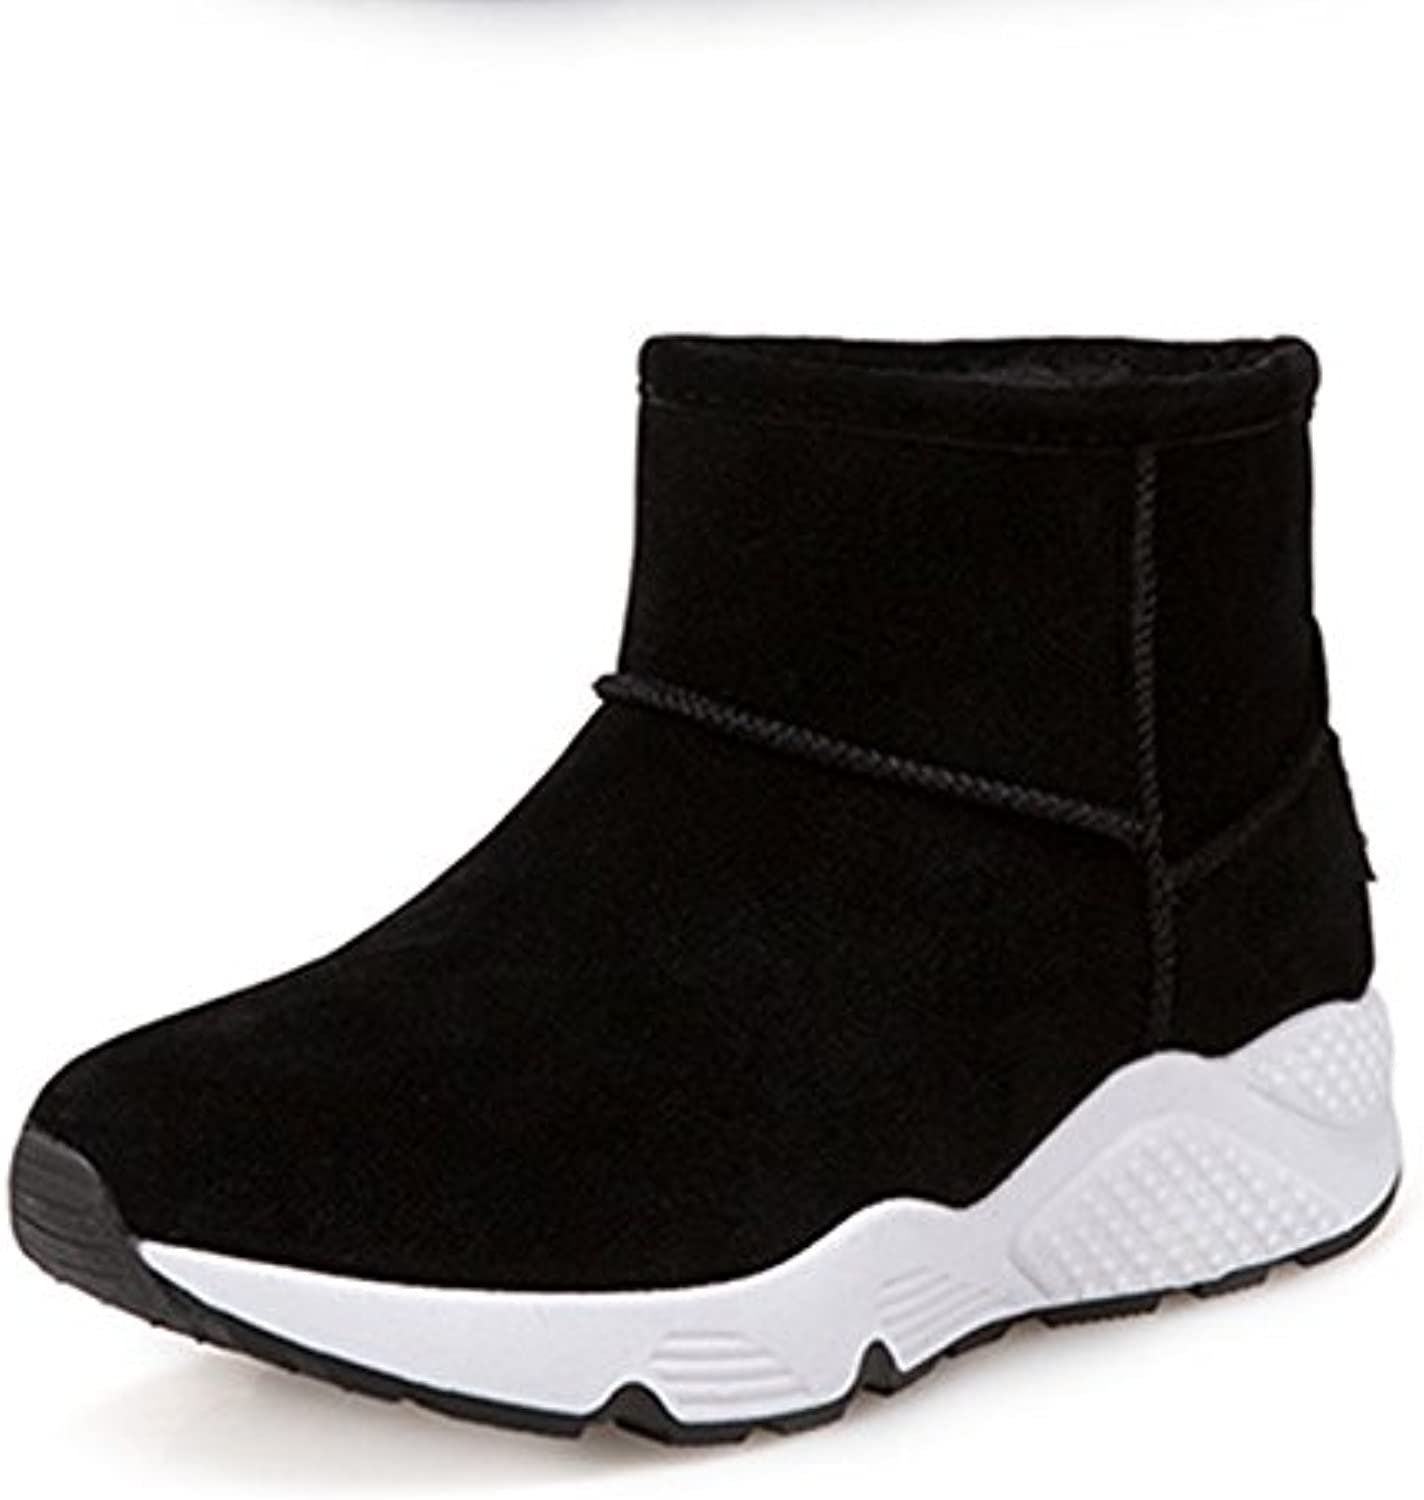 WYMBS Women's shoes Thickening Keep Warm Snow Boots Movement Leisure Short Tube Cotton Boots,Black,35